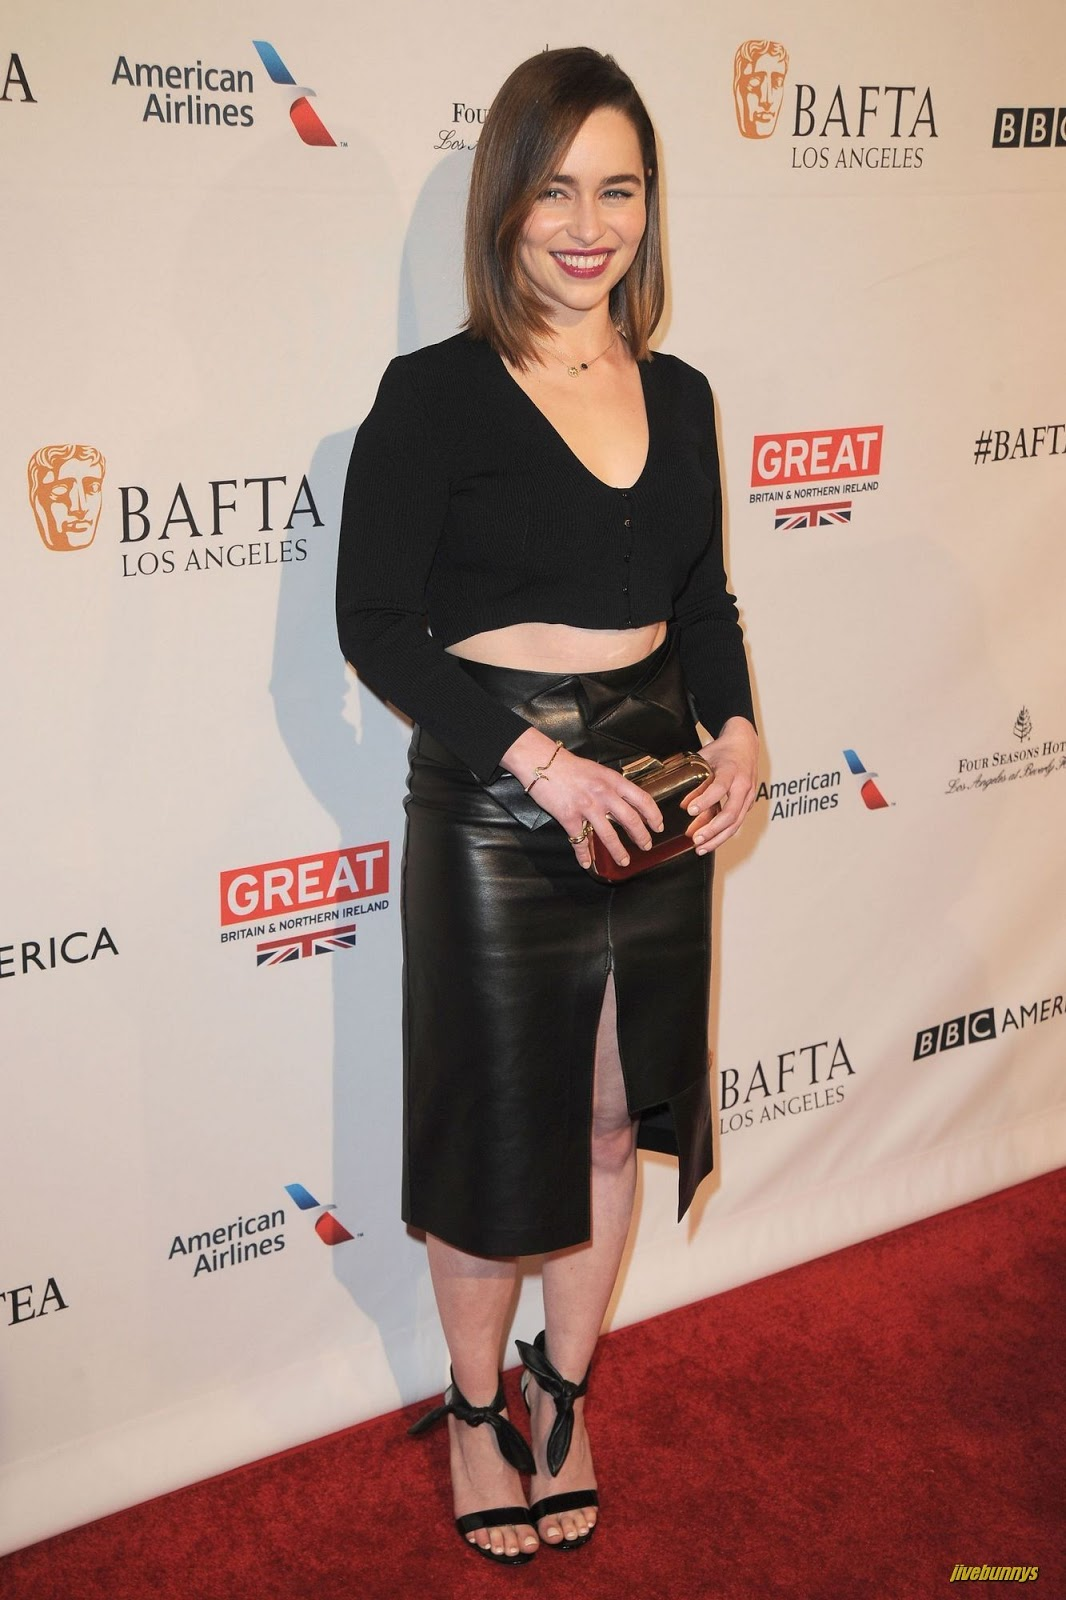 Jivebunnys Female Celebrity Picture Gallery: Emilia Clarke ...